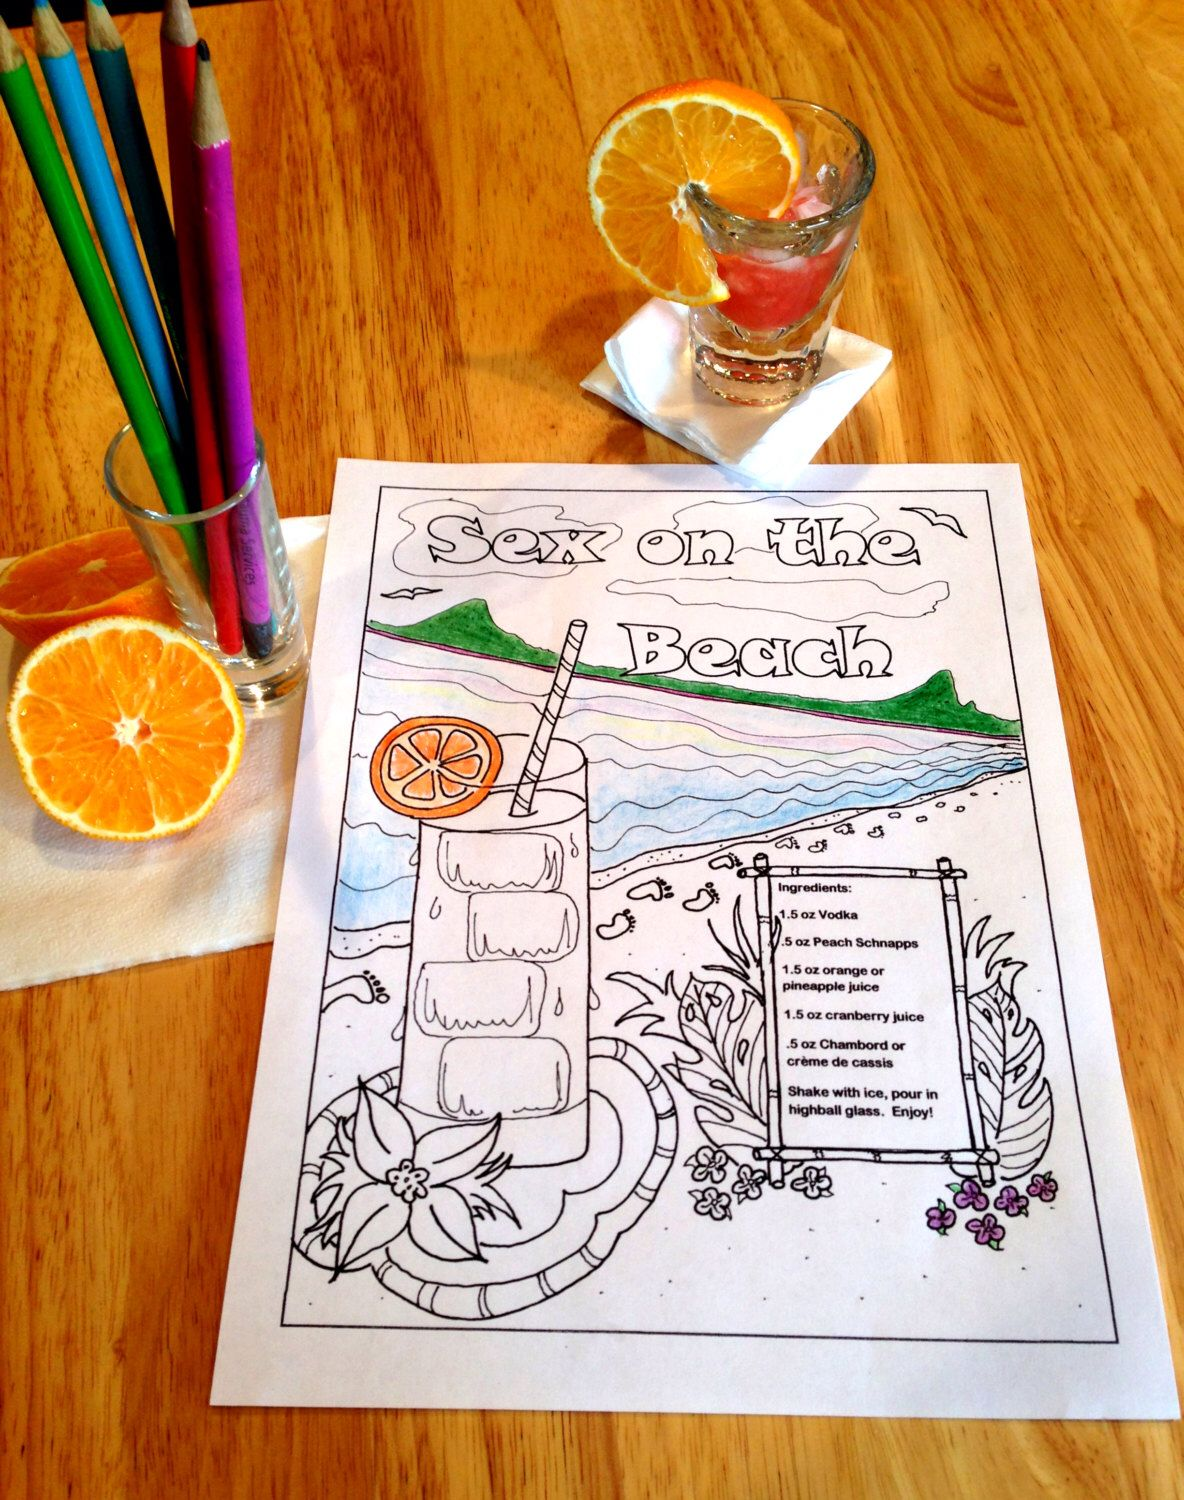 Printable coloring pages etsy - Printable Coloring Page For Adults Sex On The Beach Cocktail Coloring Instant Download Recipe Included